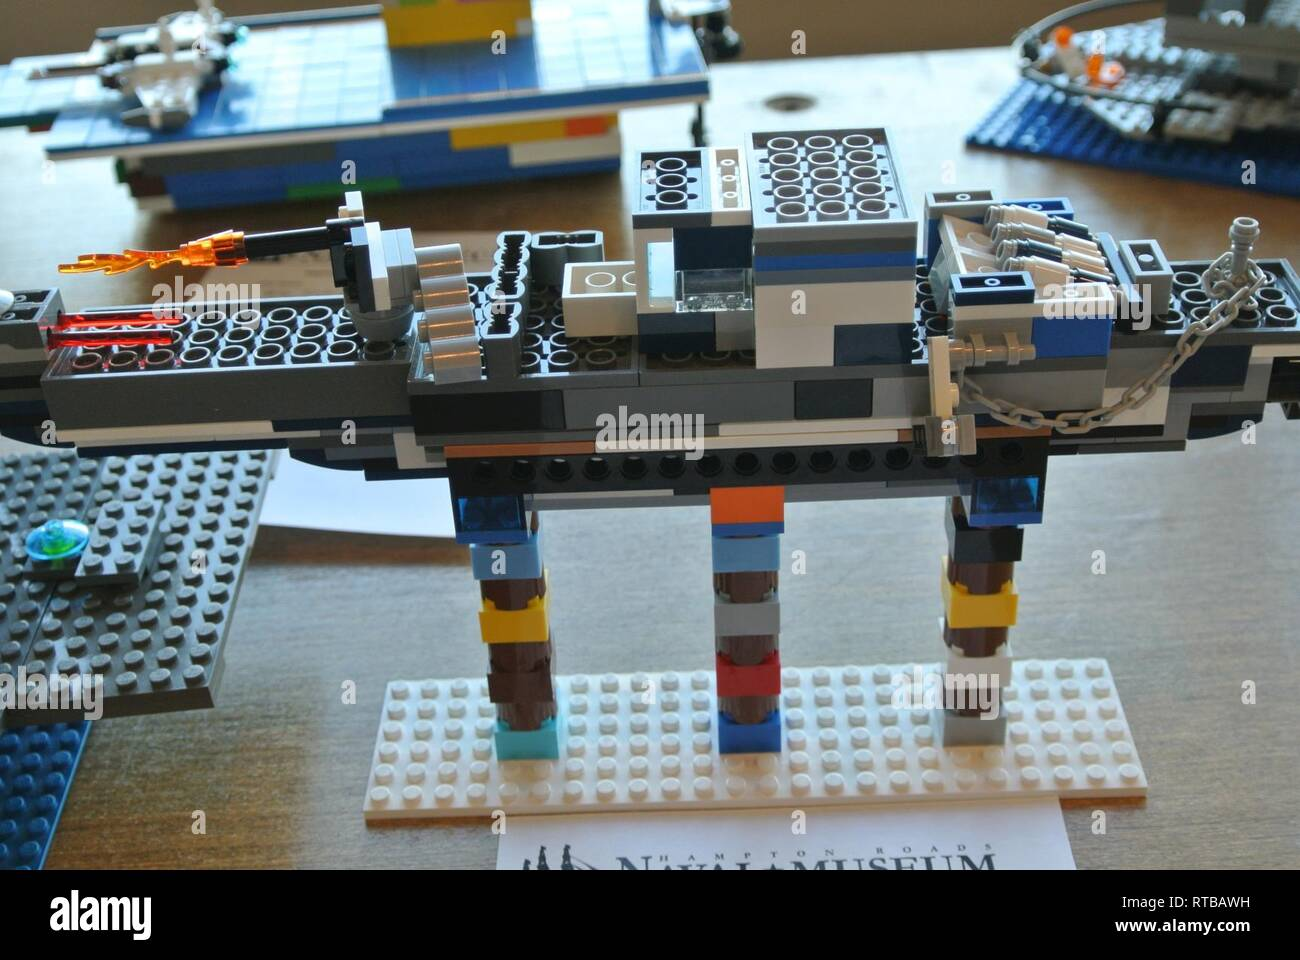 Pictured are some of the entries in the made at home LEGO brick